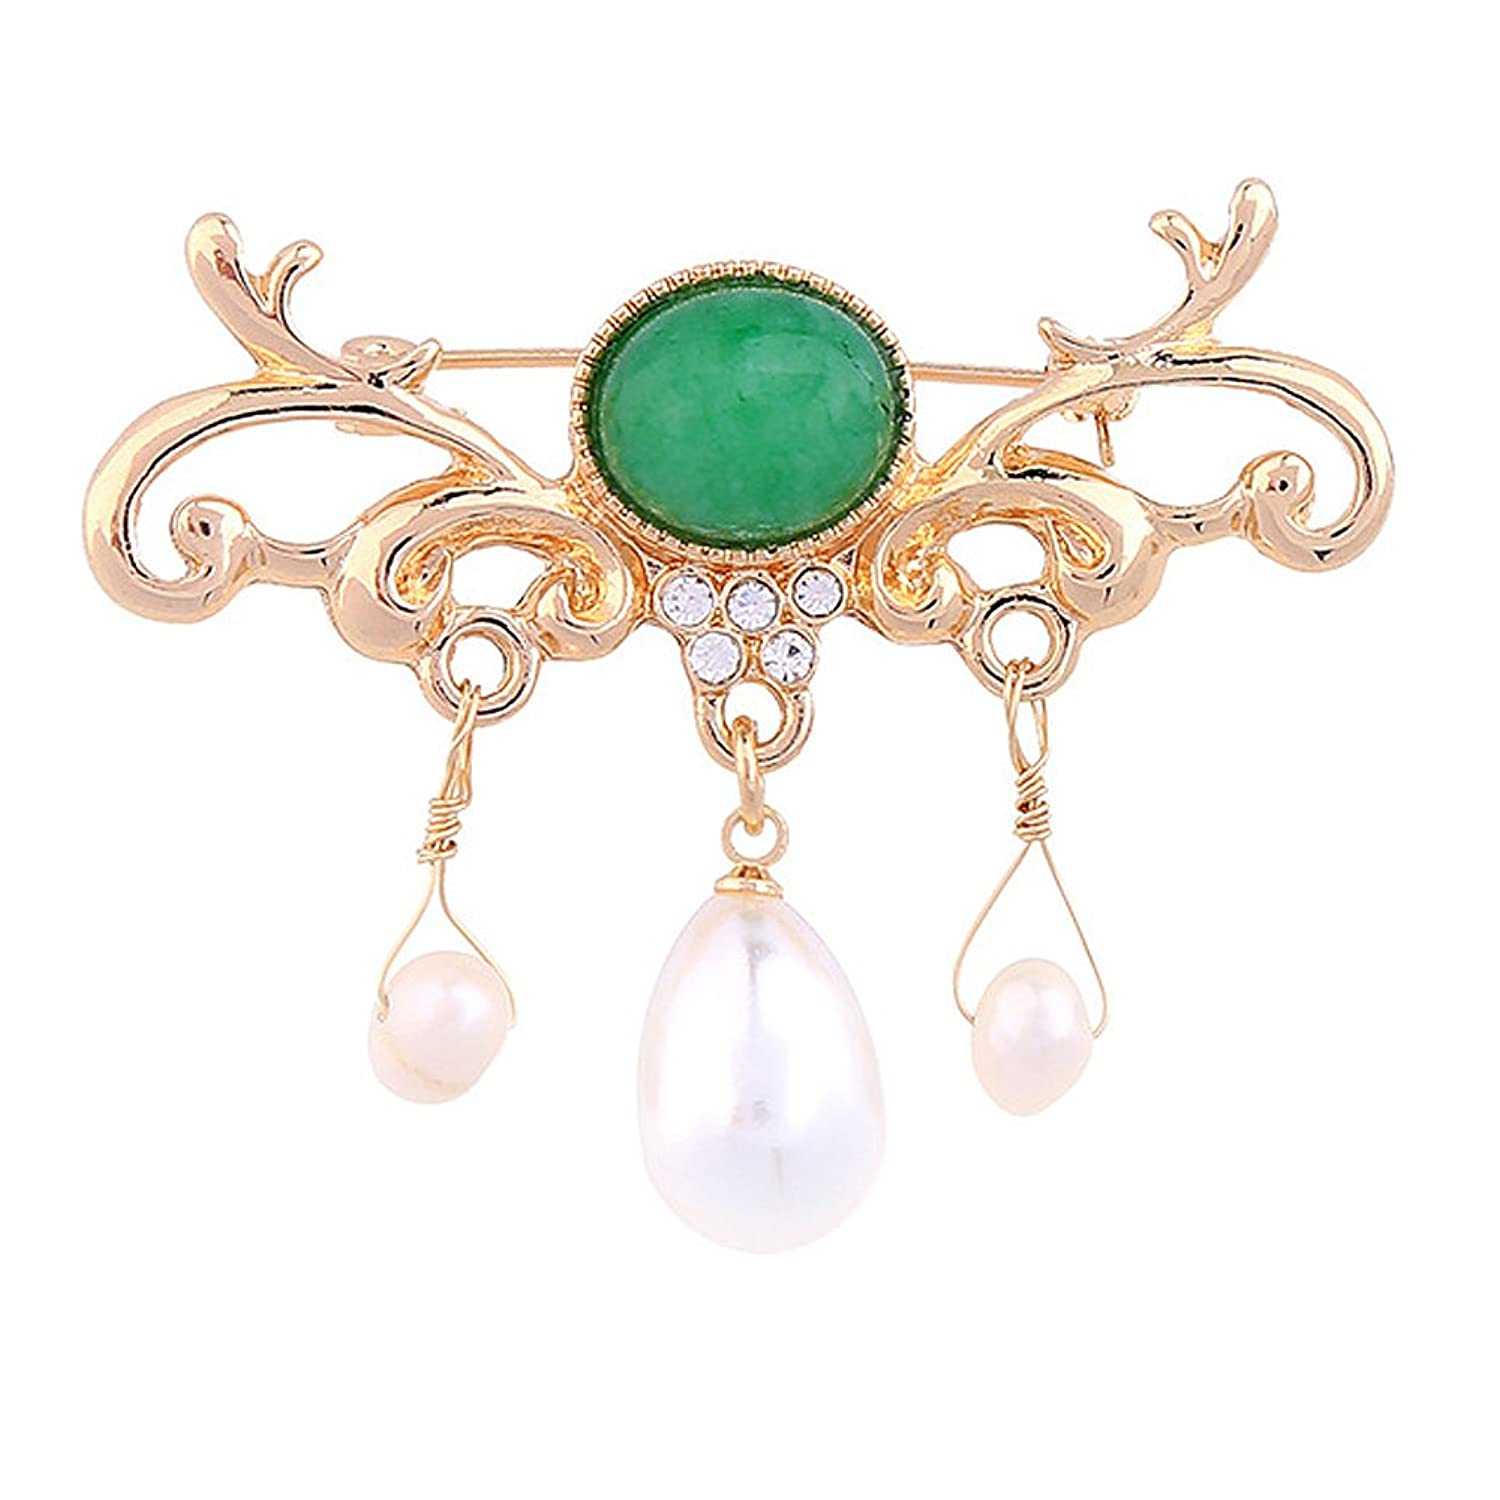 Vintage Emerald Stone Brooch Pin Artificial Pearls Dangle Gifts For Women Mother RareLove